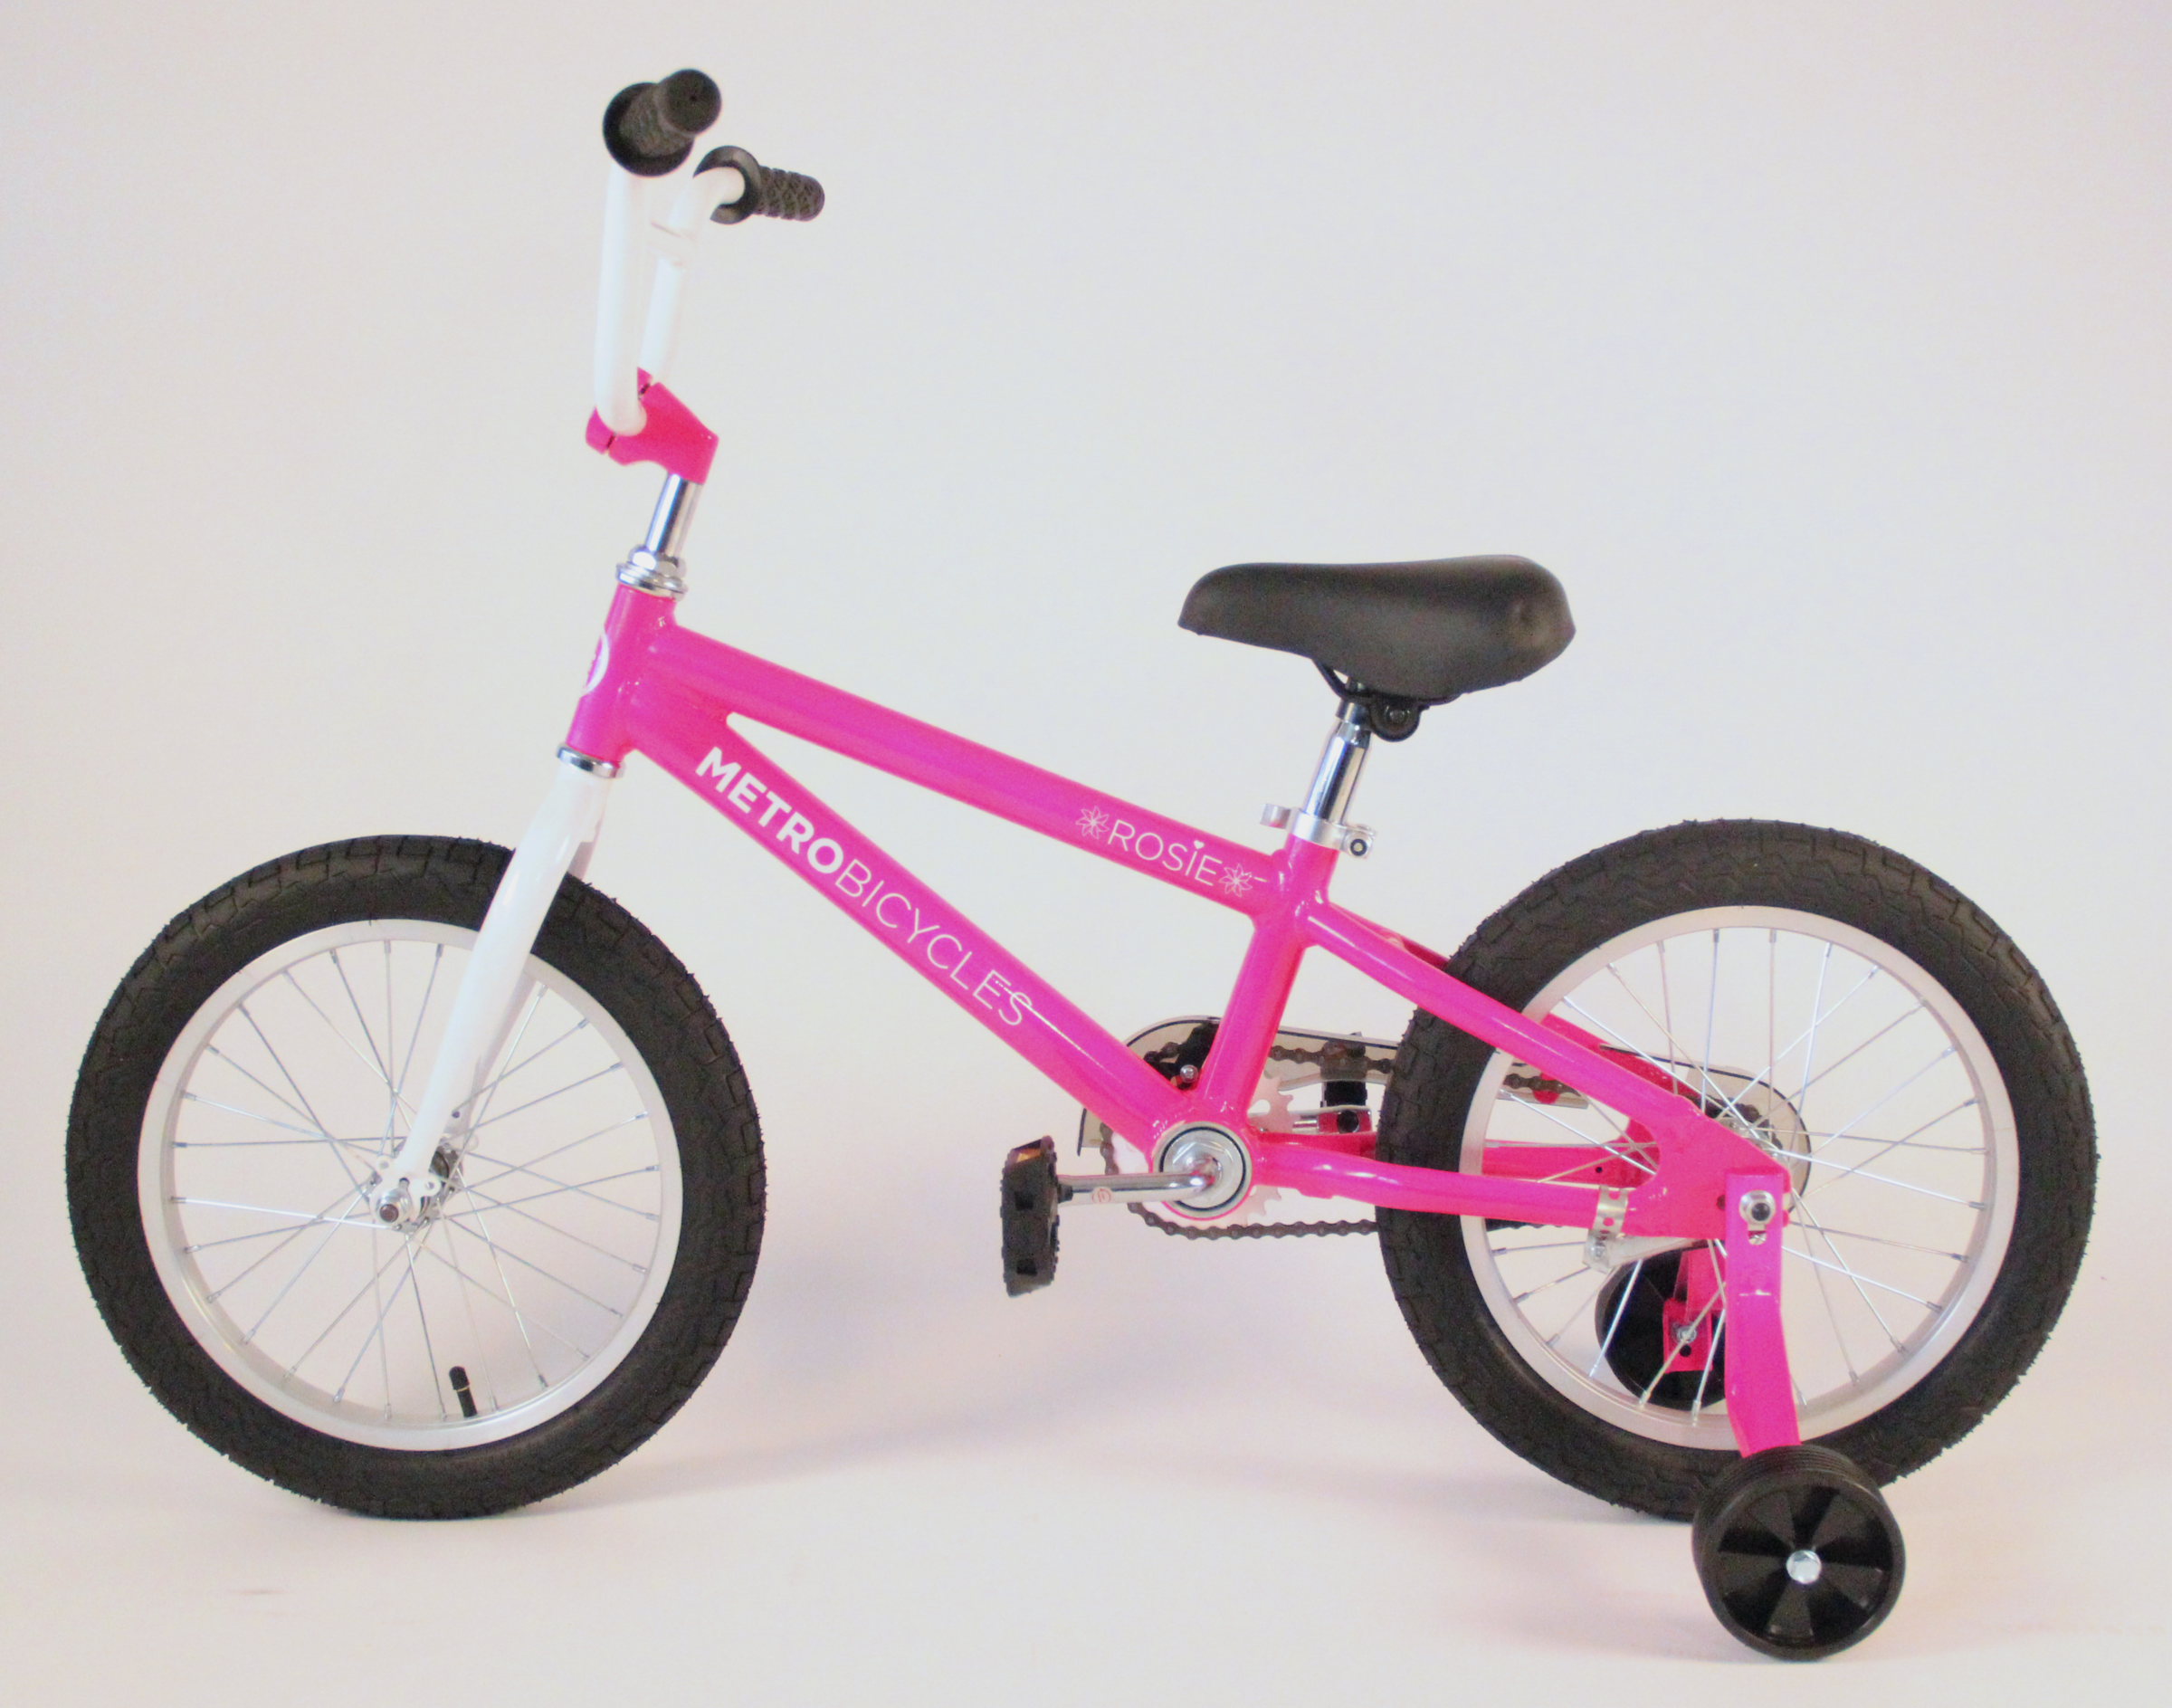 Adults or Childrens Bicycles in BLUE RED WHITE PINK BLACK V-BRAKE BIKE LEVERS